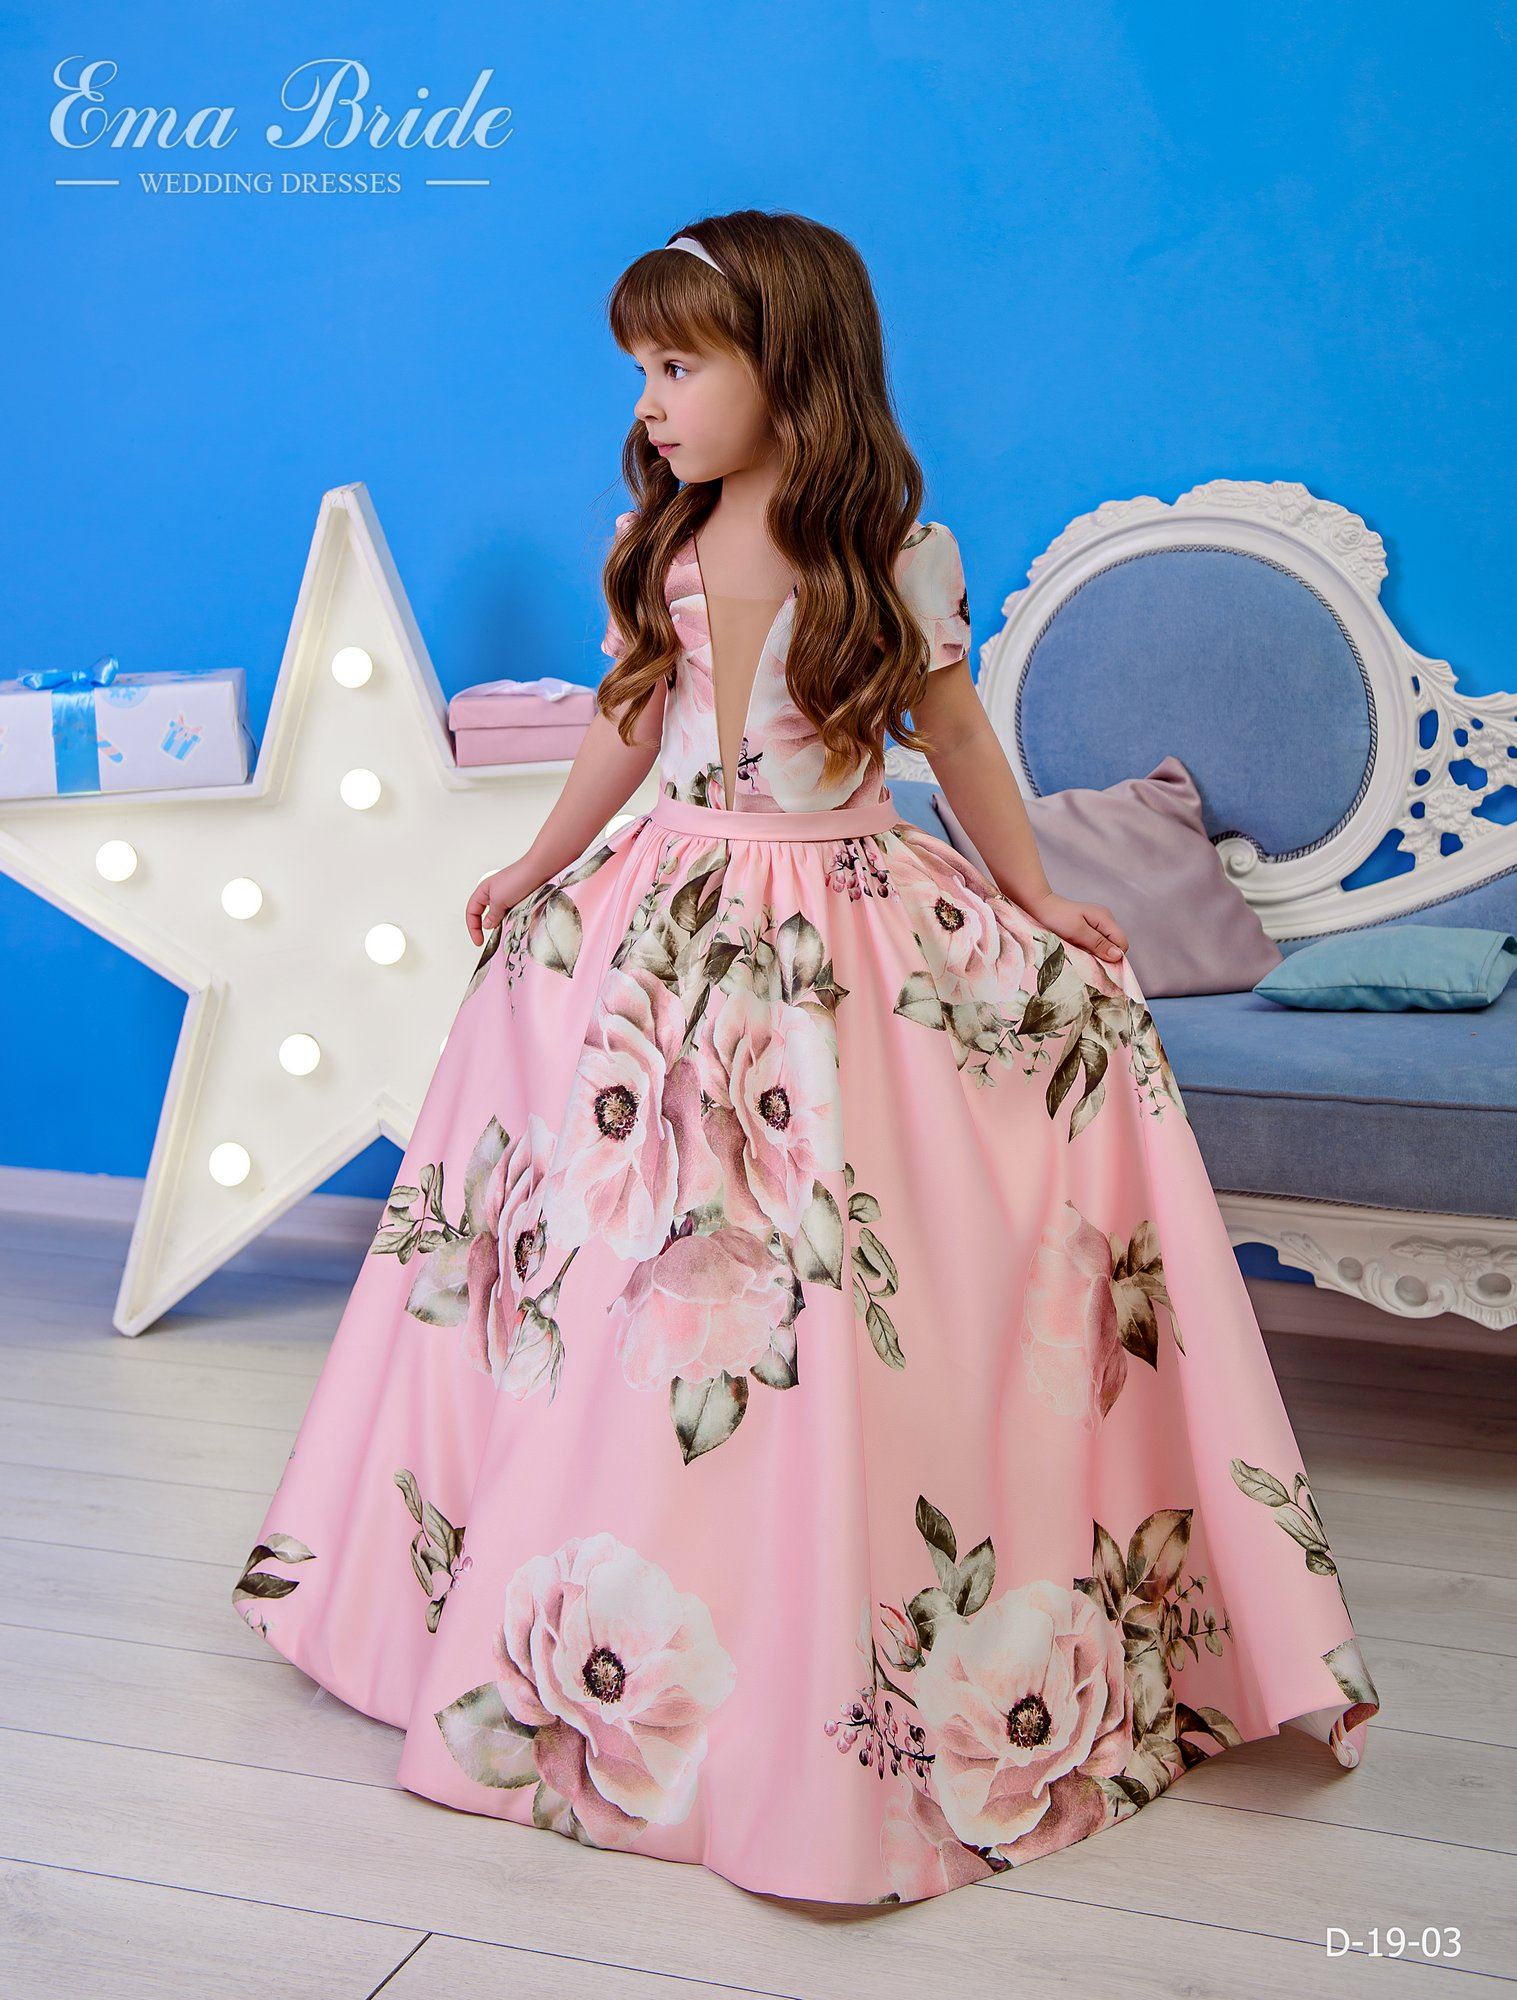 Children's dress by EmaBride D-19-03 2019